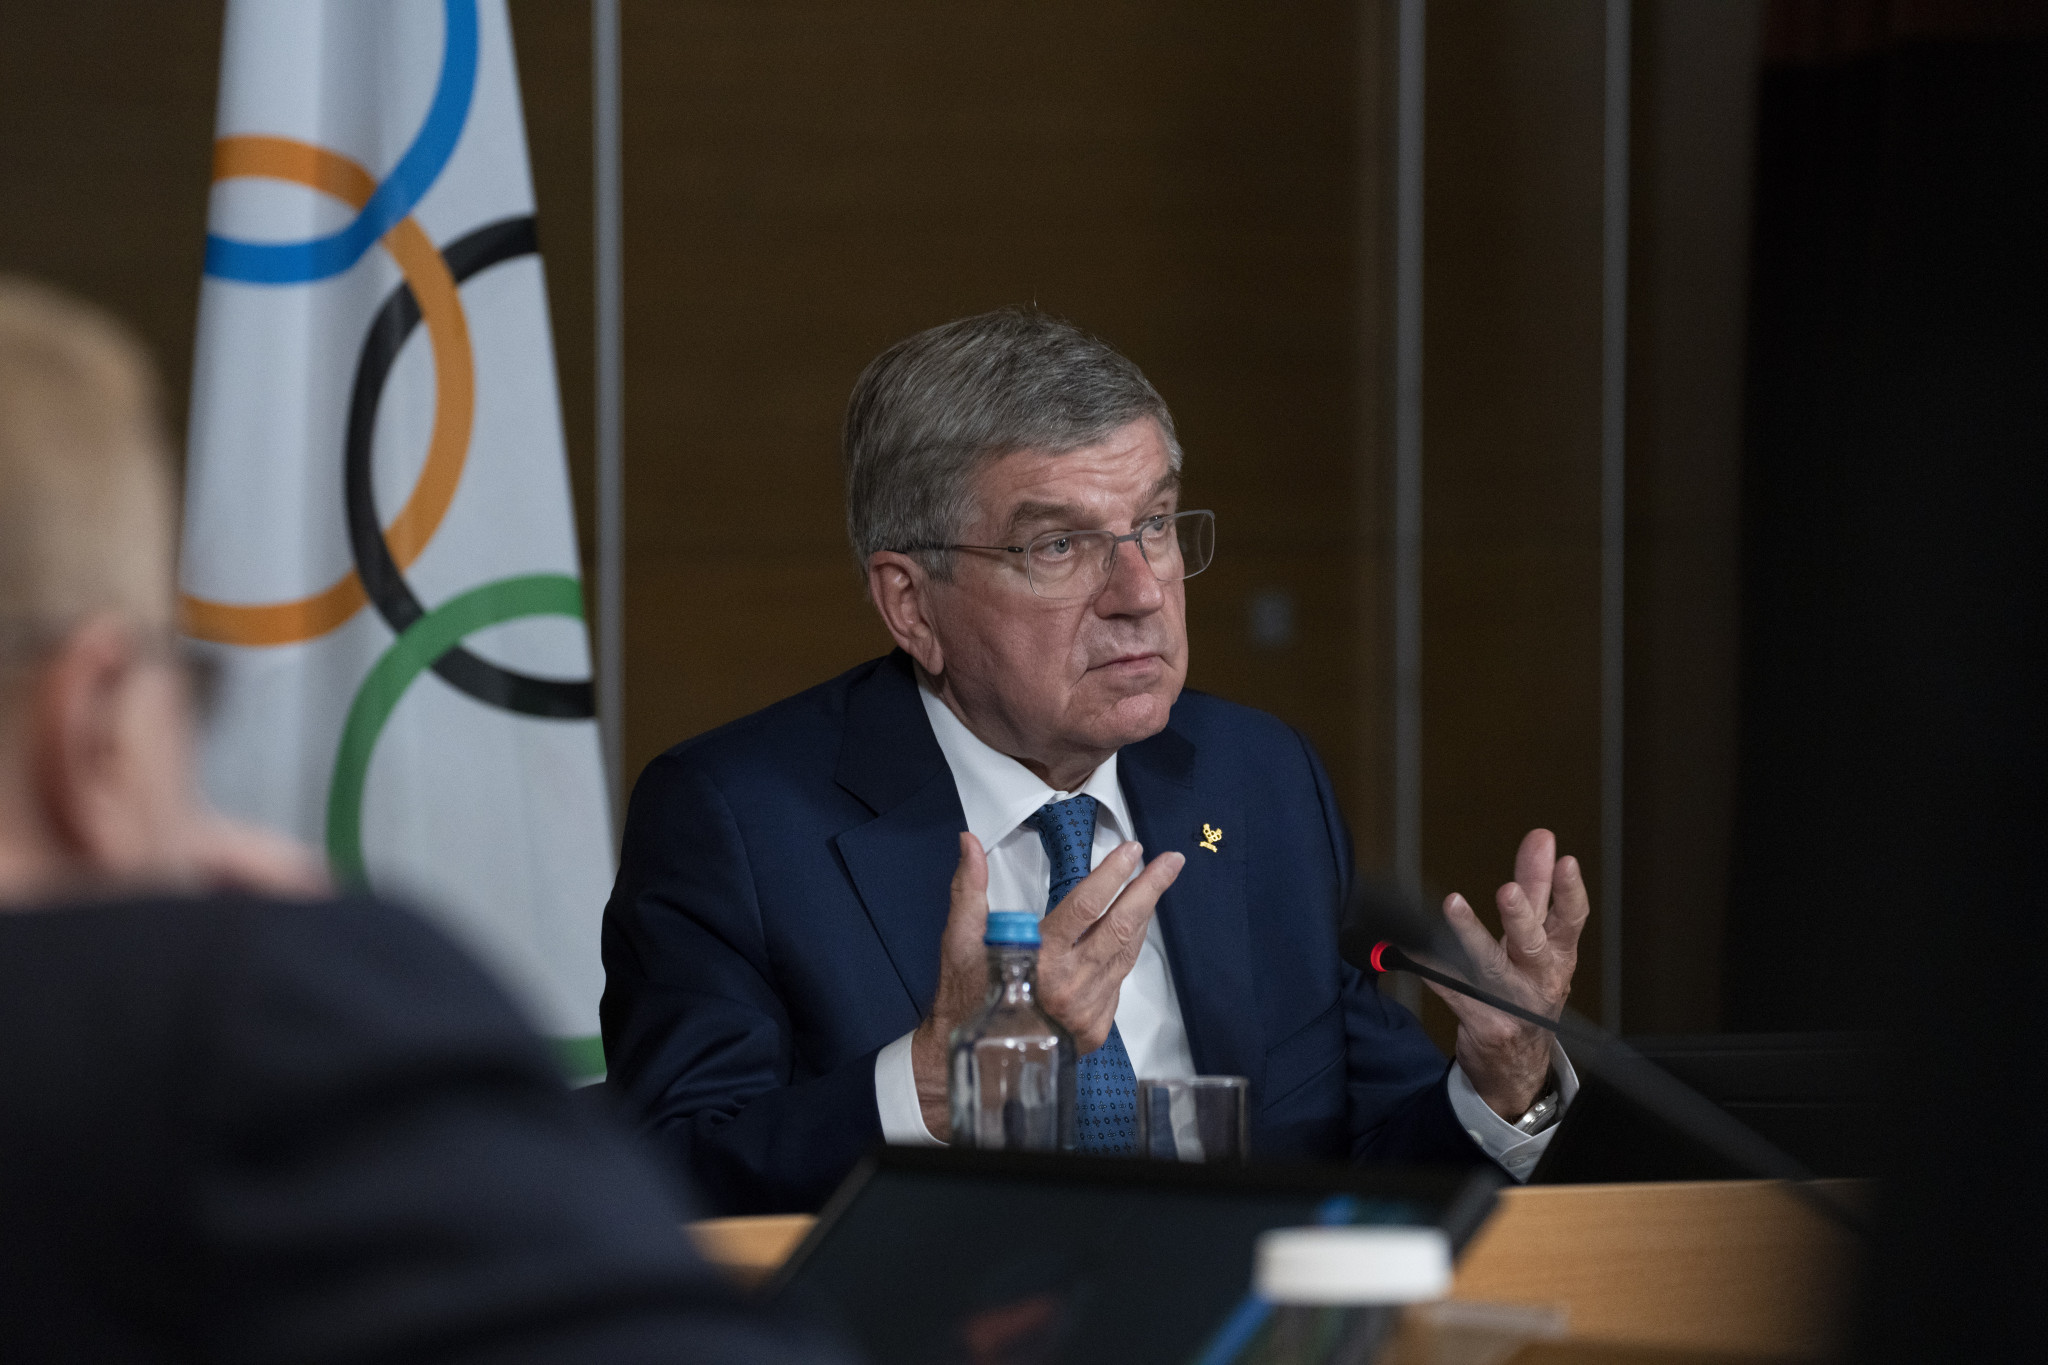 IOC expresses concerns over FIFA's plans for biennial World Cups